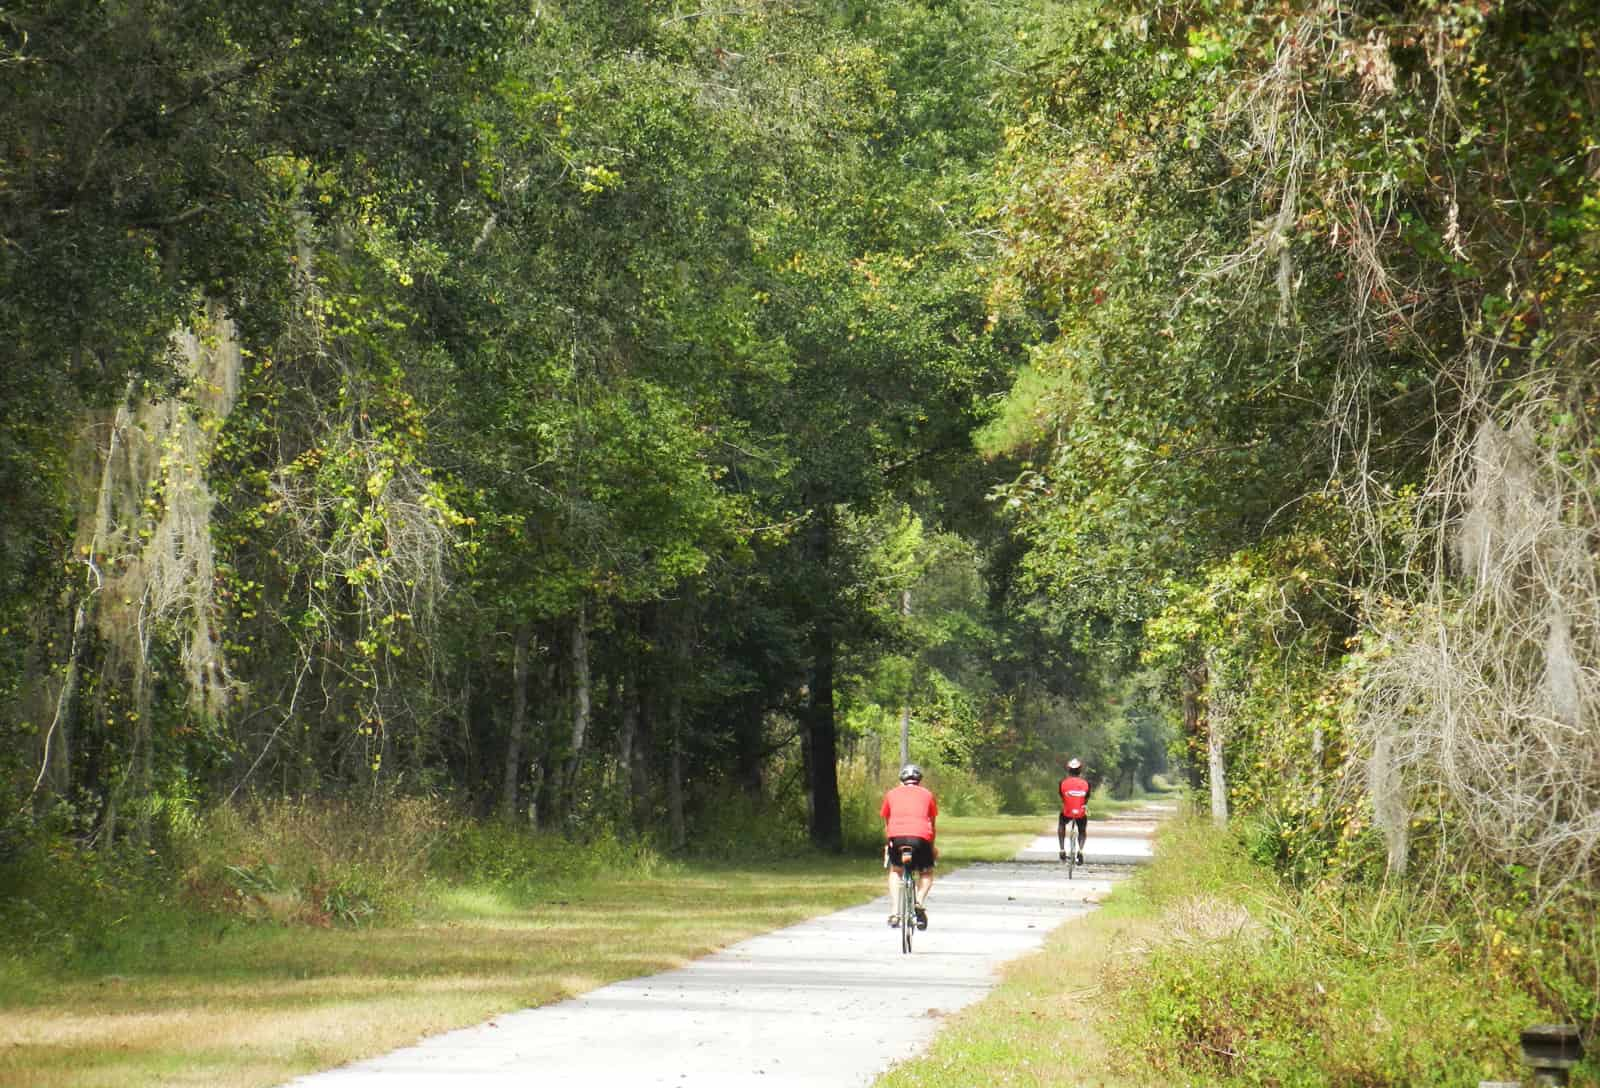 Gainesville-Hawthorne Trail is one of the state's best bike trails. (Photo Bonnie Gross)